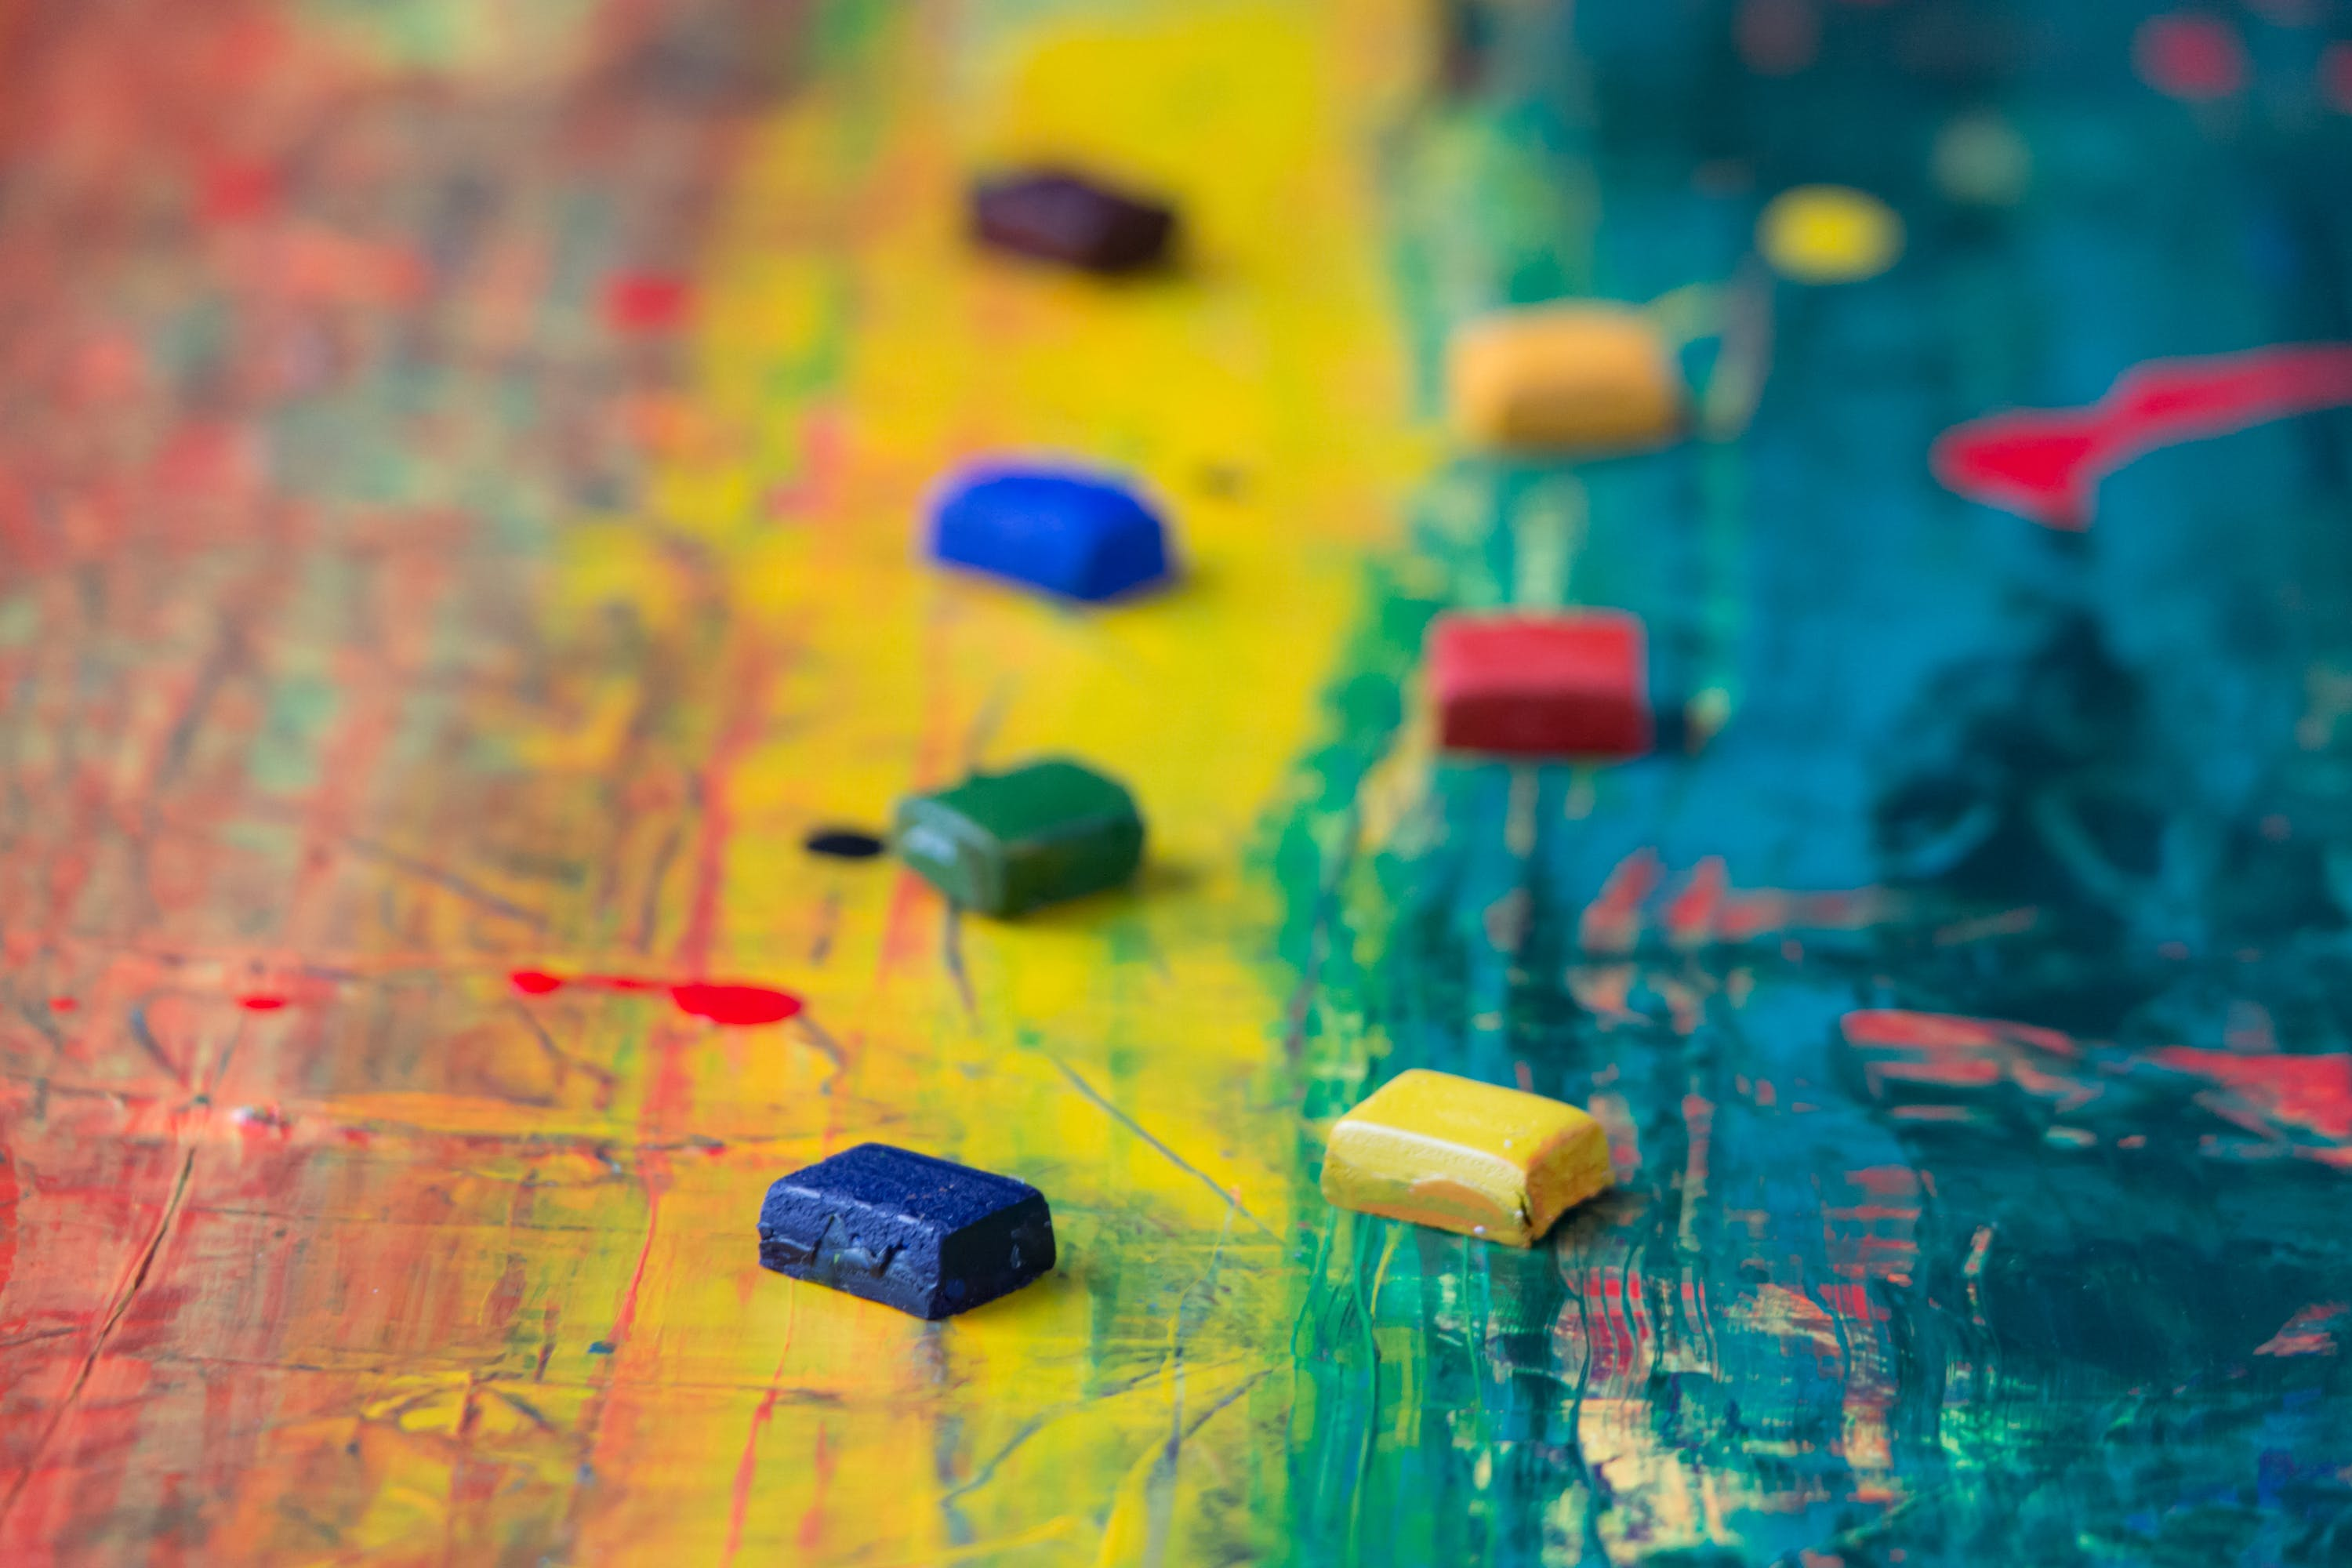 Free stock photo of art, creative, painting, blur